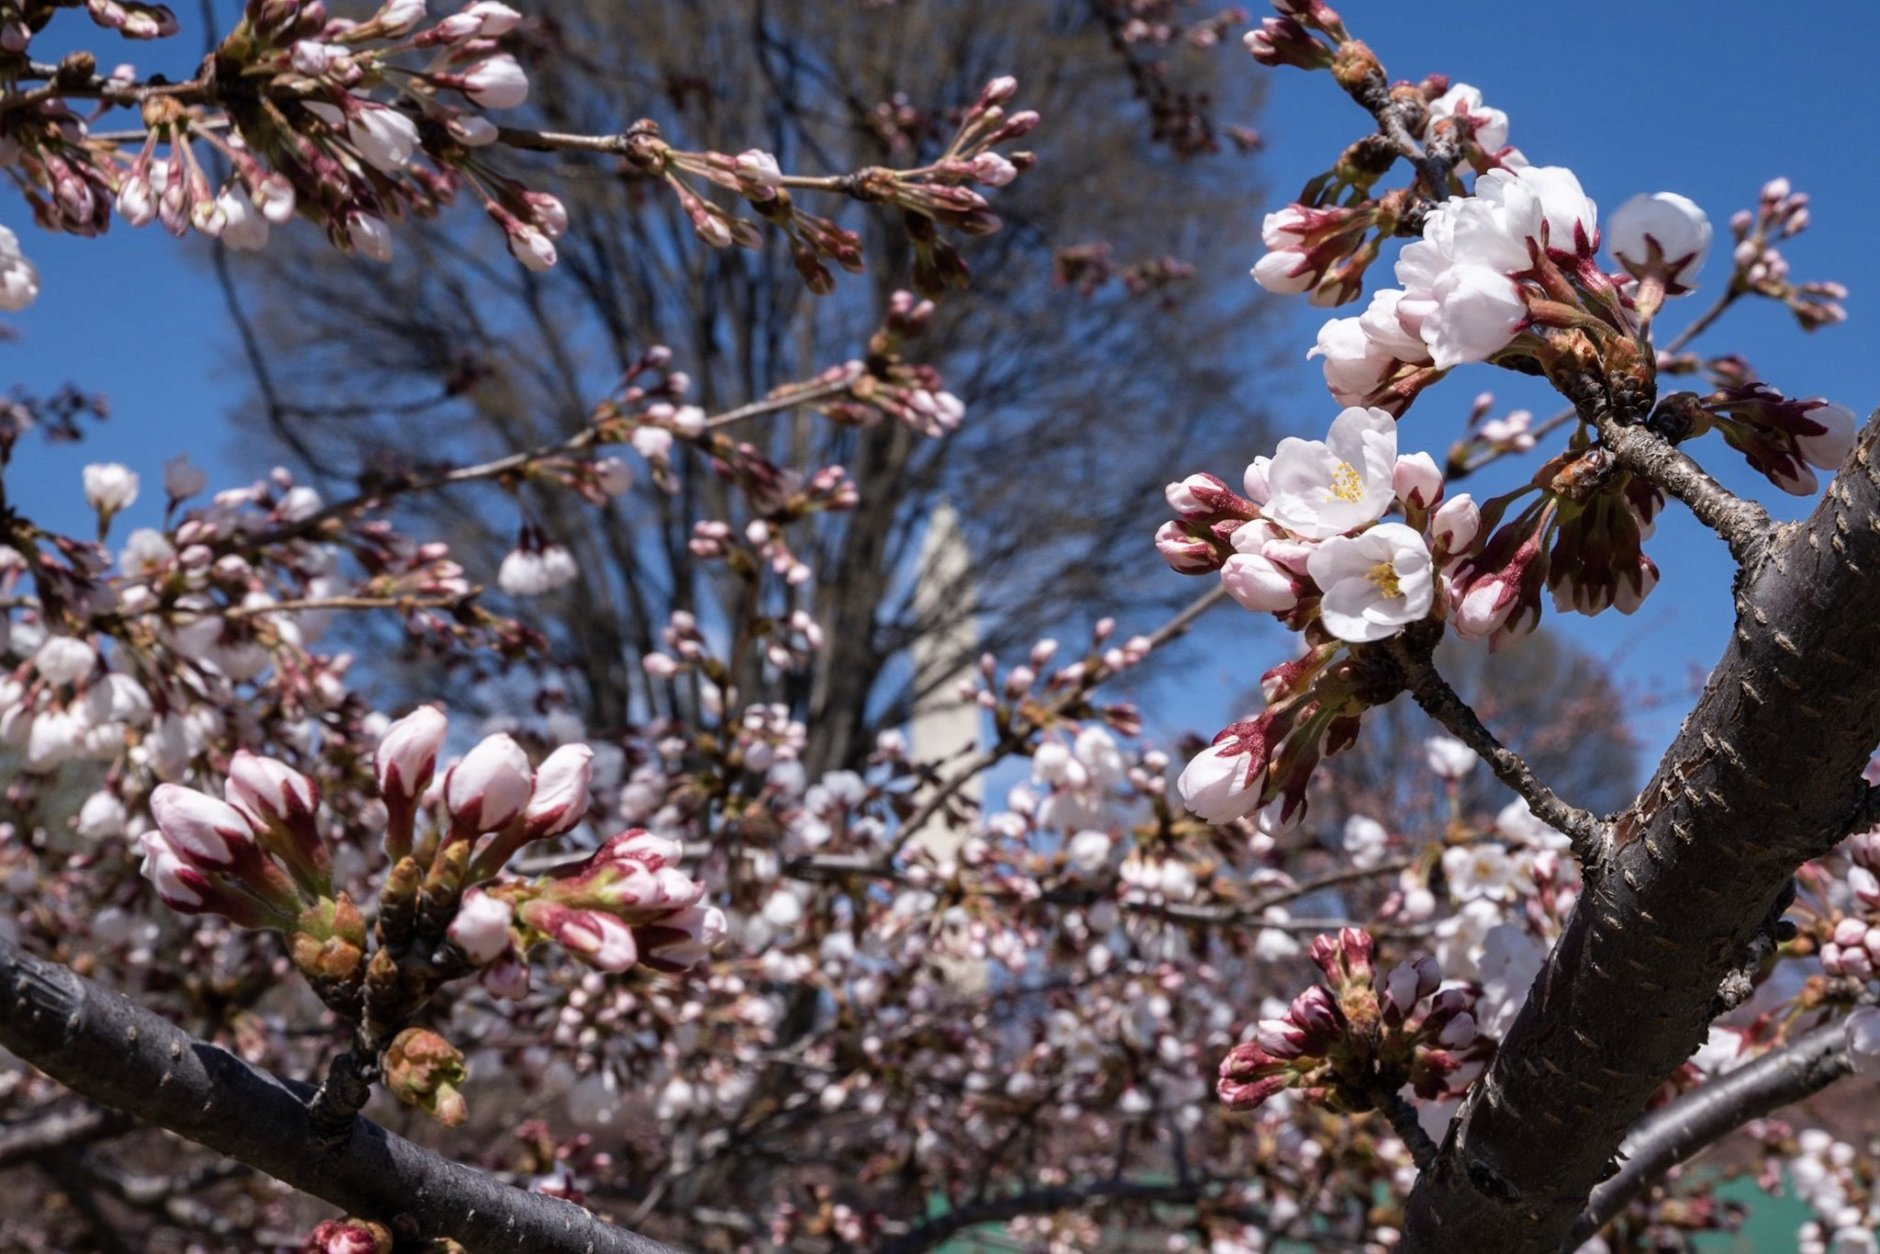 """The National Park Service defines """"peak bloom"""" as the day when 70 percent of the Yoshino Cherry's flowers are open. On March 28, just a few flowers were in full bloom — the majority of the buds were still closed, seen here lower-left. (WTOP/Alejandro Alvarez)"""